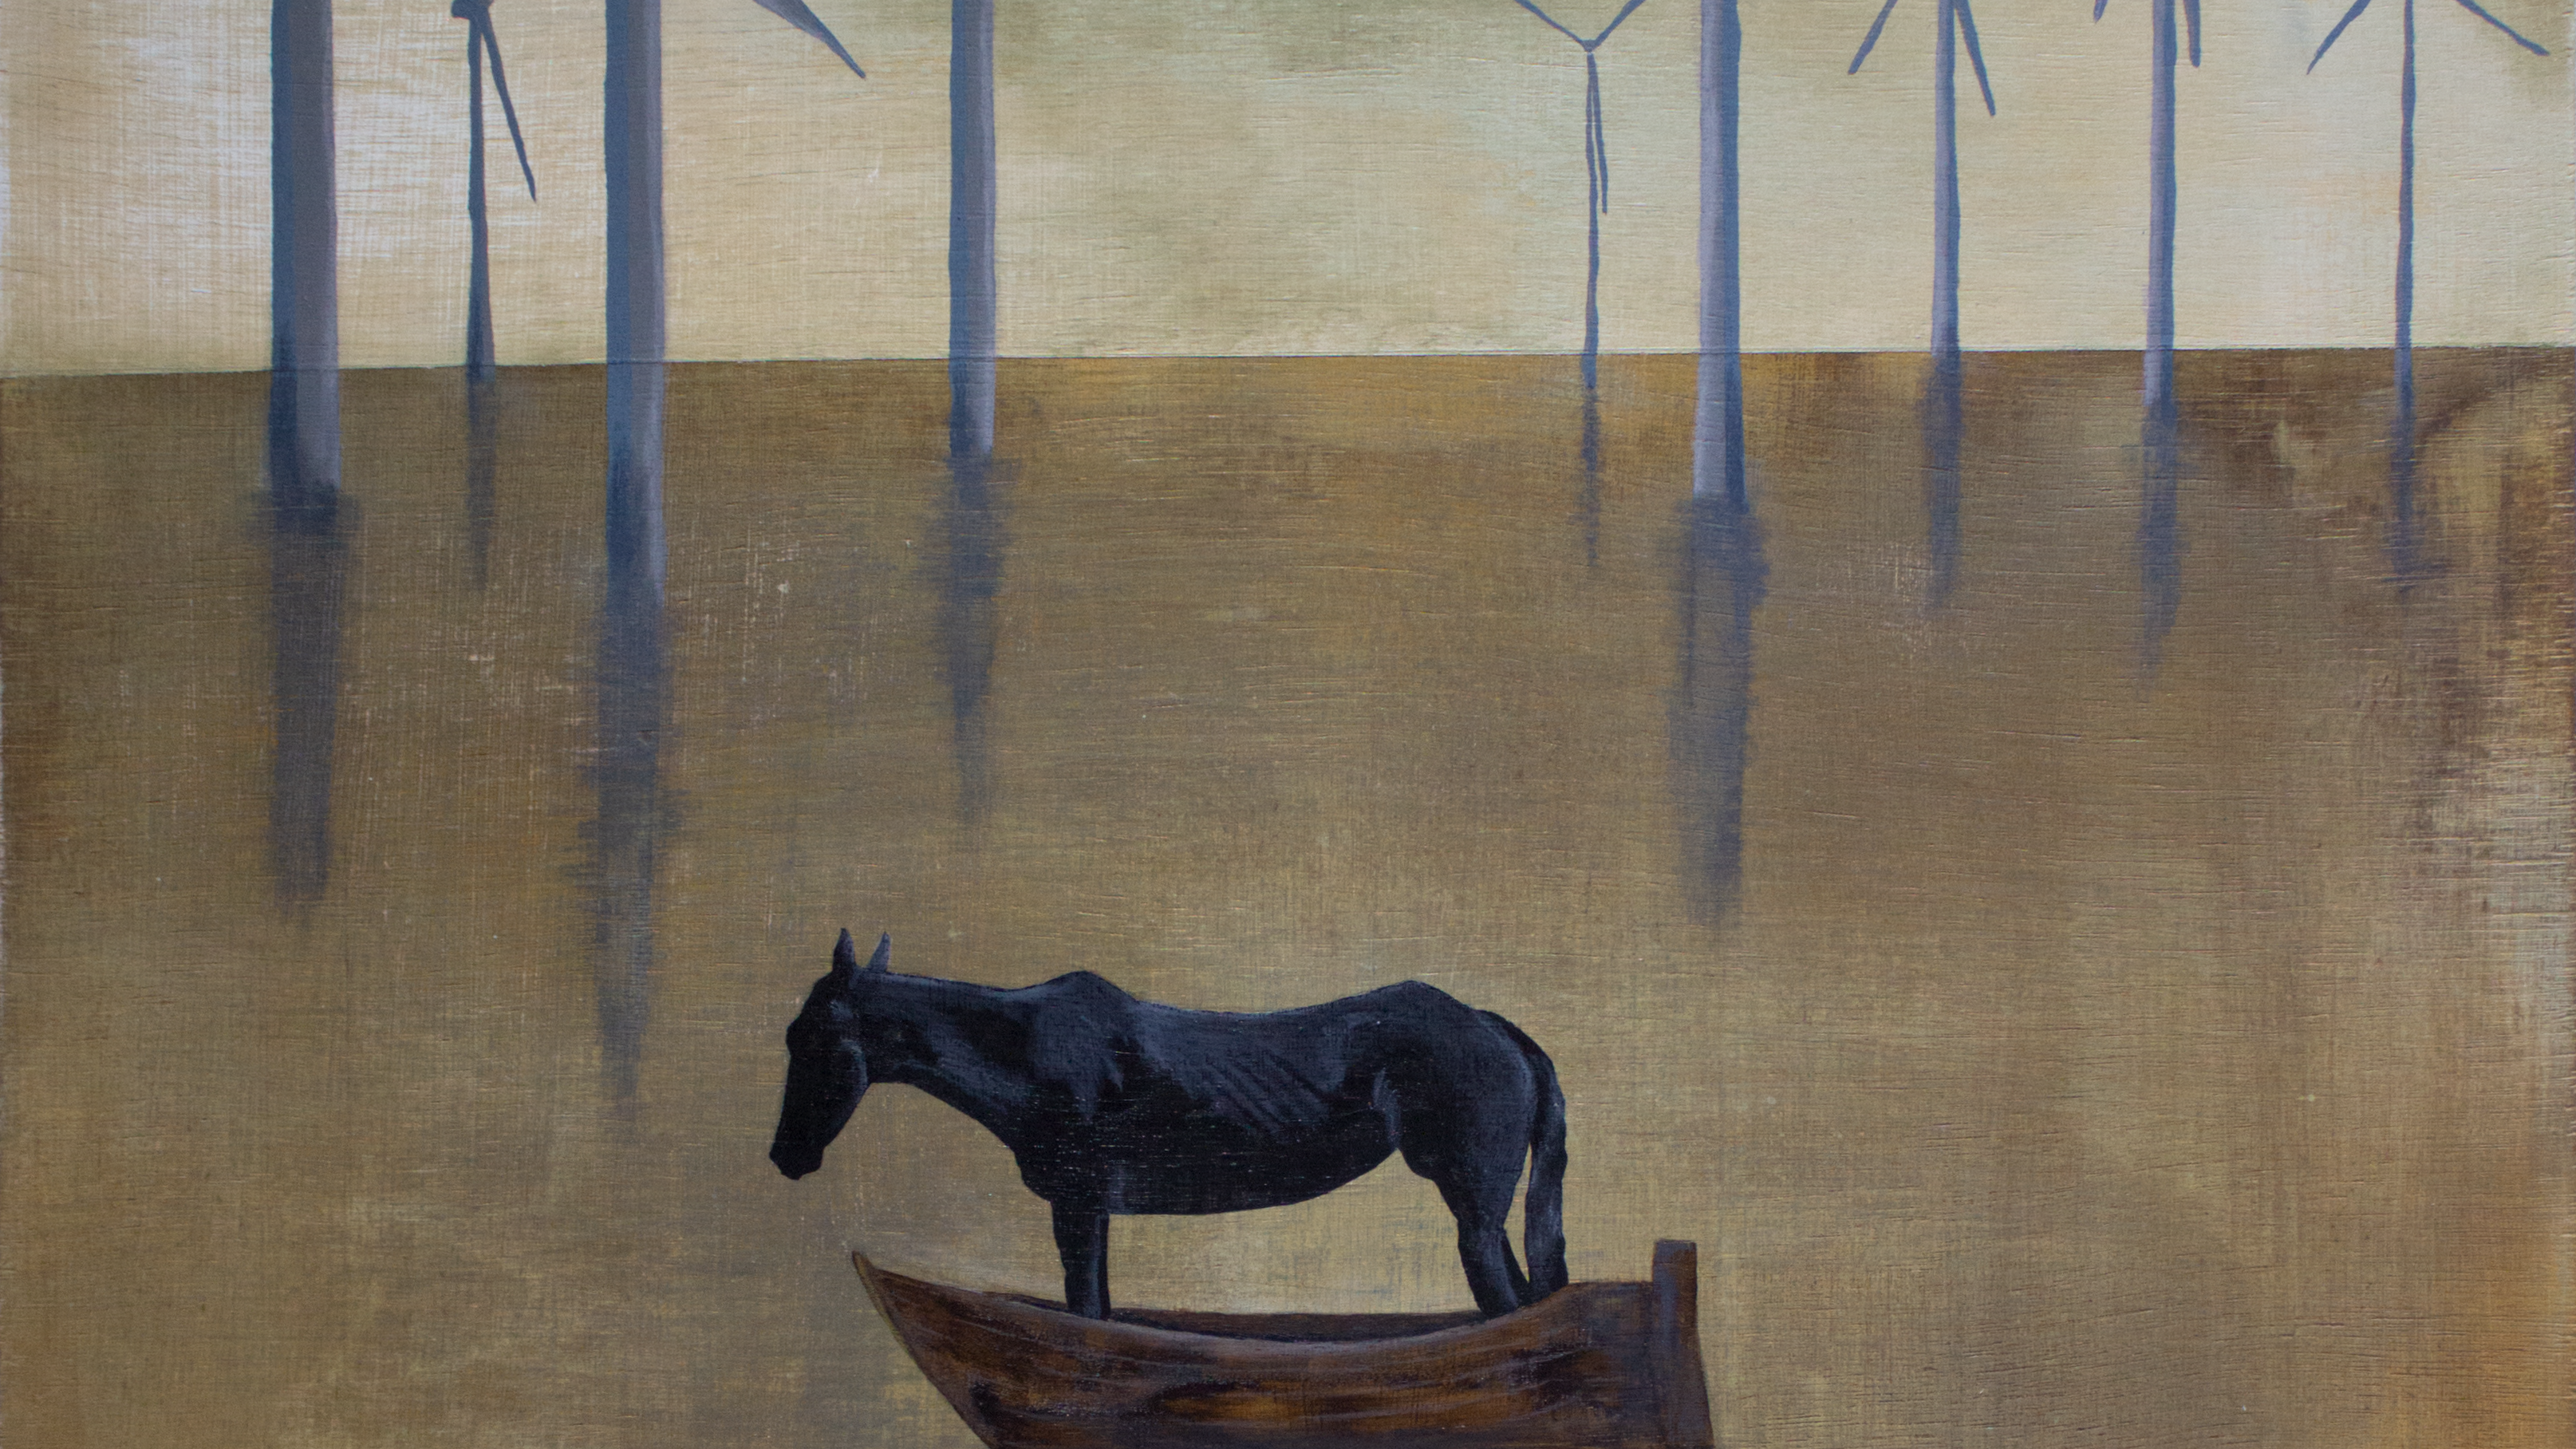 A painting of a horse inside a boat in front of a wind turbine